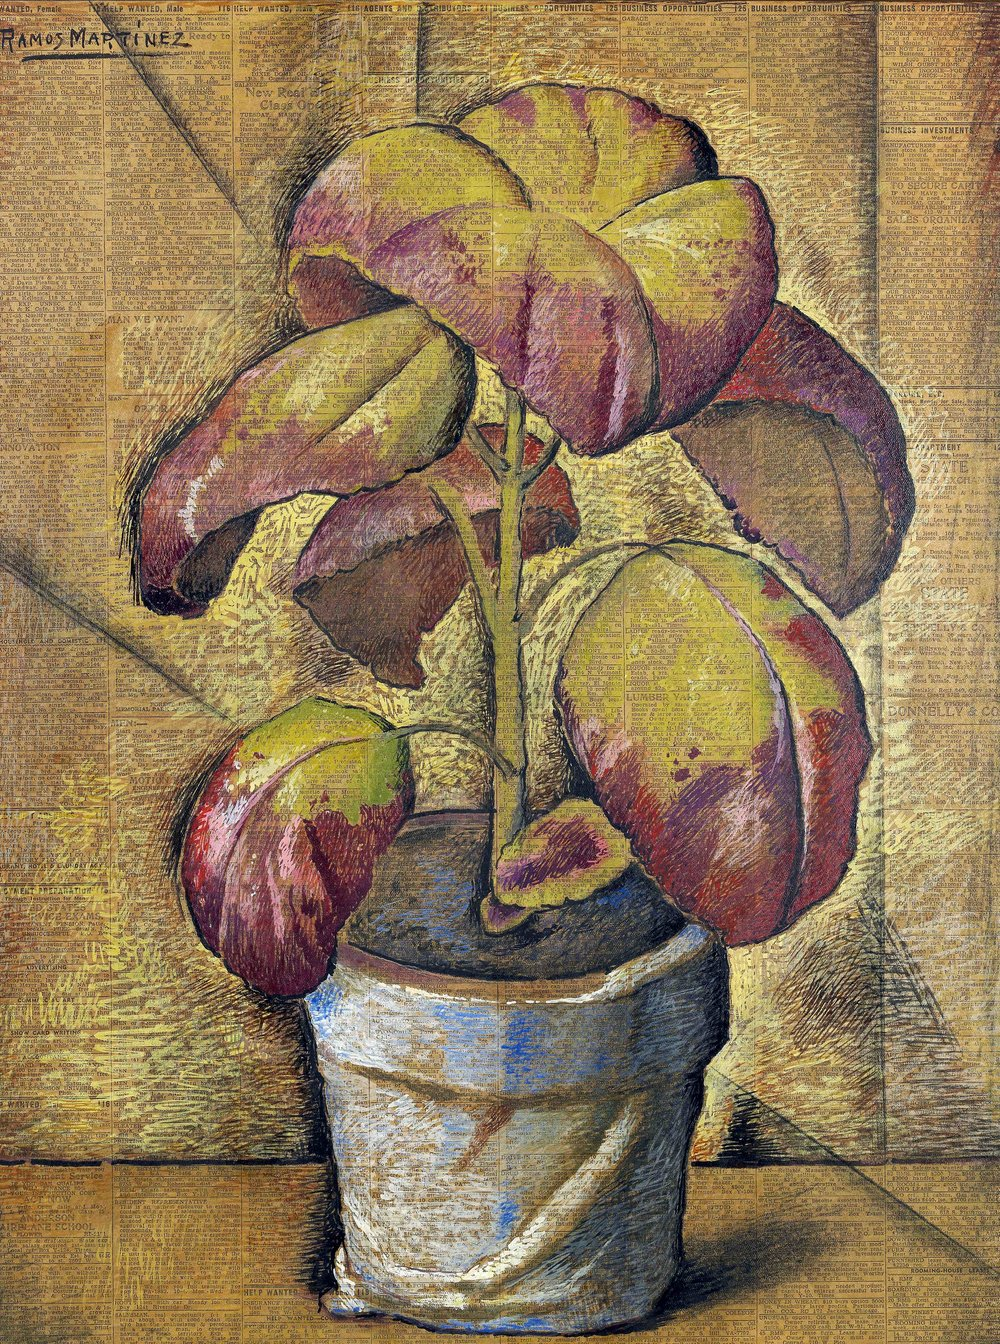 Coleus en Maceta Azul / Coleus in a Blue Point   1938 tempera on newsprint / temple sobre papel periódico (Los Angeles Times, February 27, 1938) 20.8 x 15.4 inches; 52.7 x 39.1 centimeters Private collection